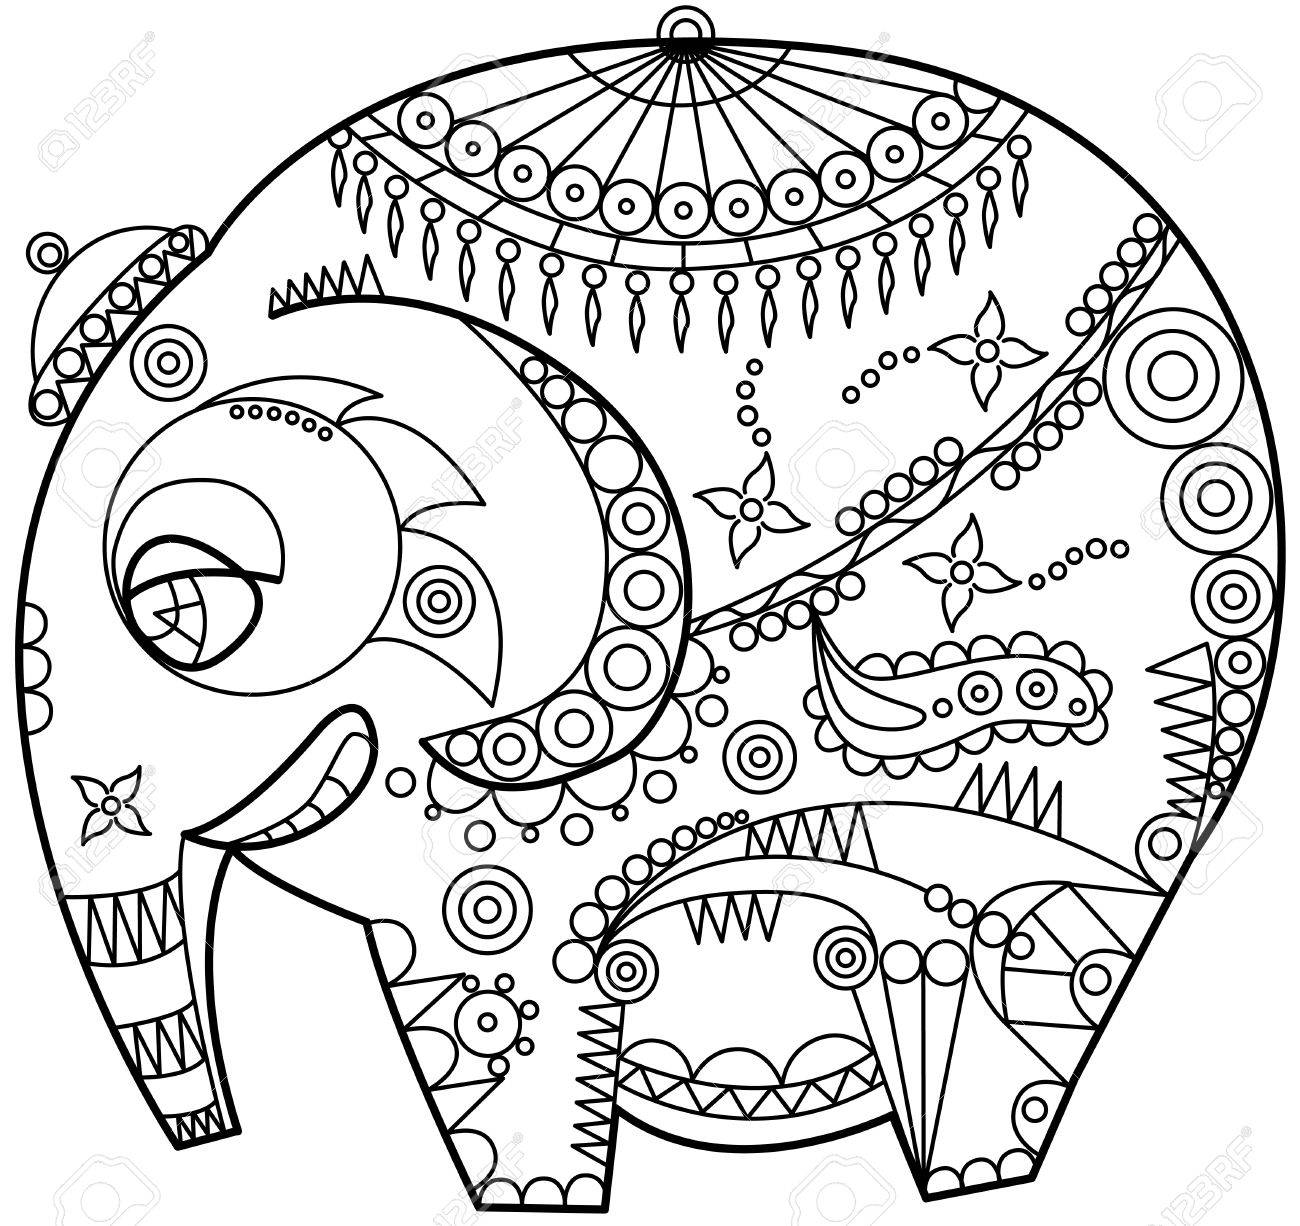 Elephant Drawing Outline Outline Elephant Indian